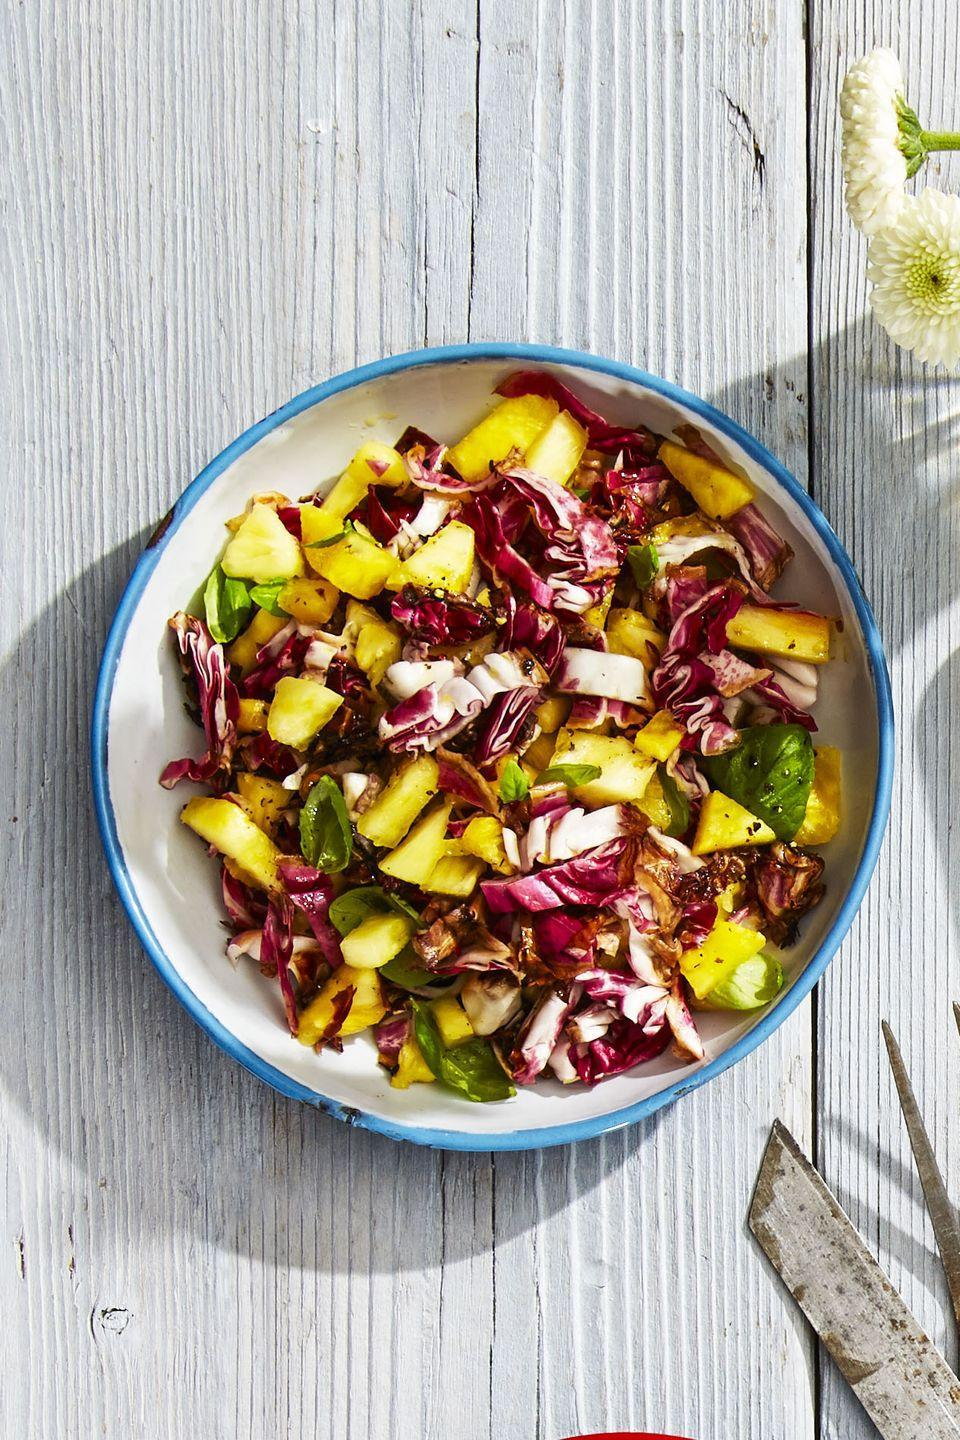 """<p>You'll want to put pineapple in all of your slaws after trying this bitter and sweet salad combo.</p><p><em><a href=""""https://www.goodhousekeeping.com/food-recipes/a39276/tropical-radicchio-slaw-recipe/"""" rel=""""nofollow noopener"""" target=""""_blank"""" data-ylk=""""slk:Get the recipe for Tropical Radicchio Slaw »"""" class=""""link rapid-noclick-resp"""">Get the recipe for Tropical Radicchio Slaw »</a></em></p>"""